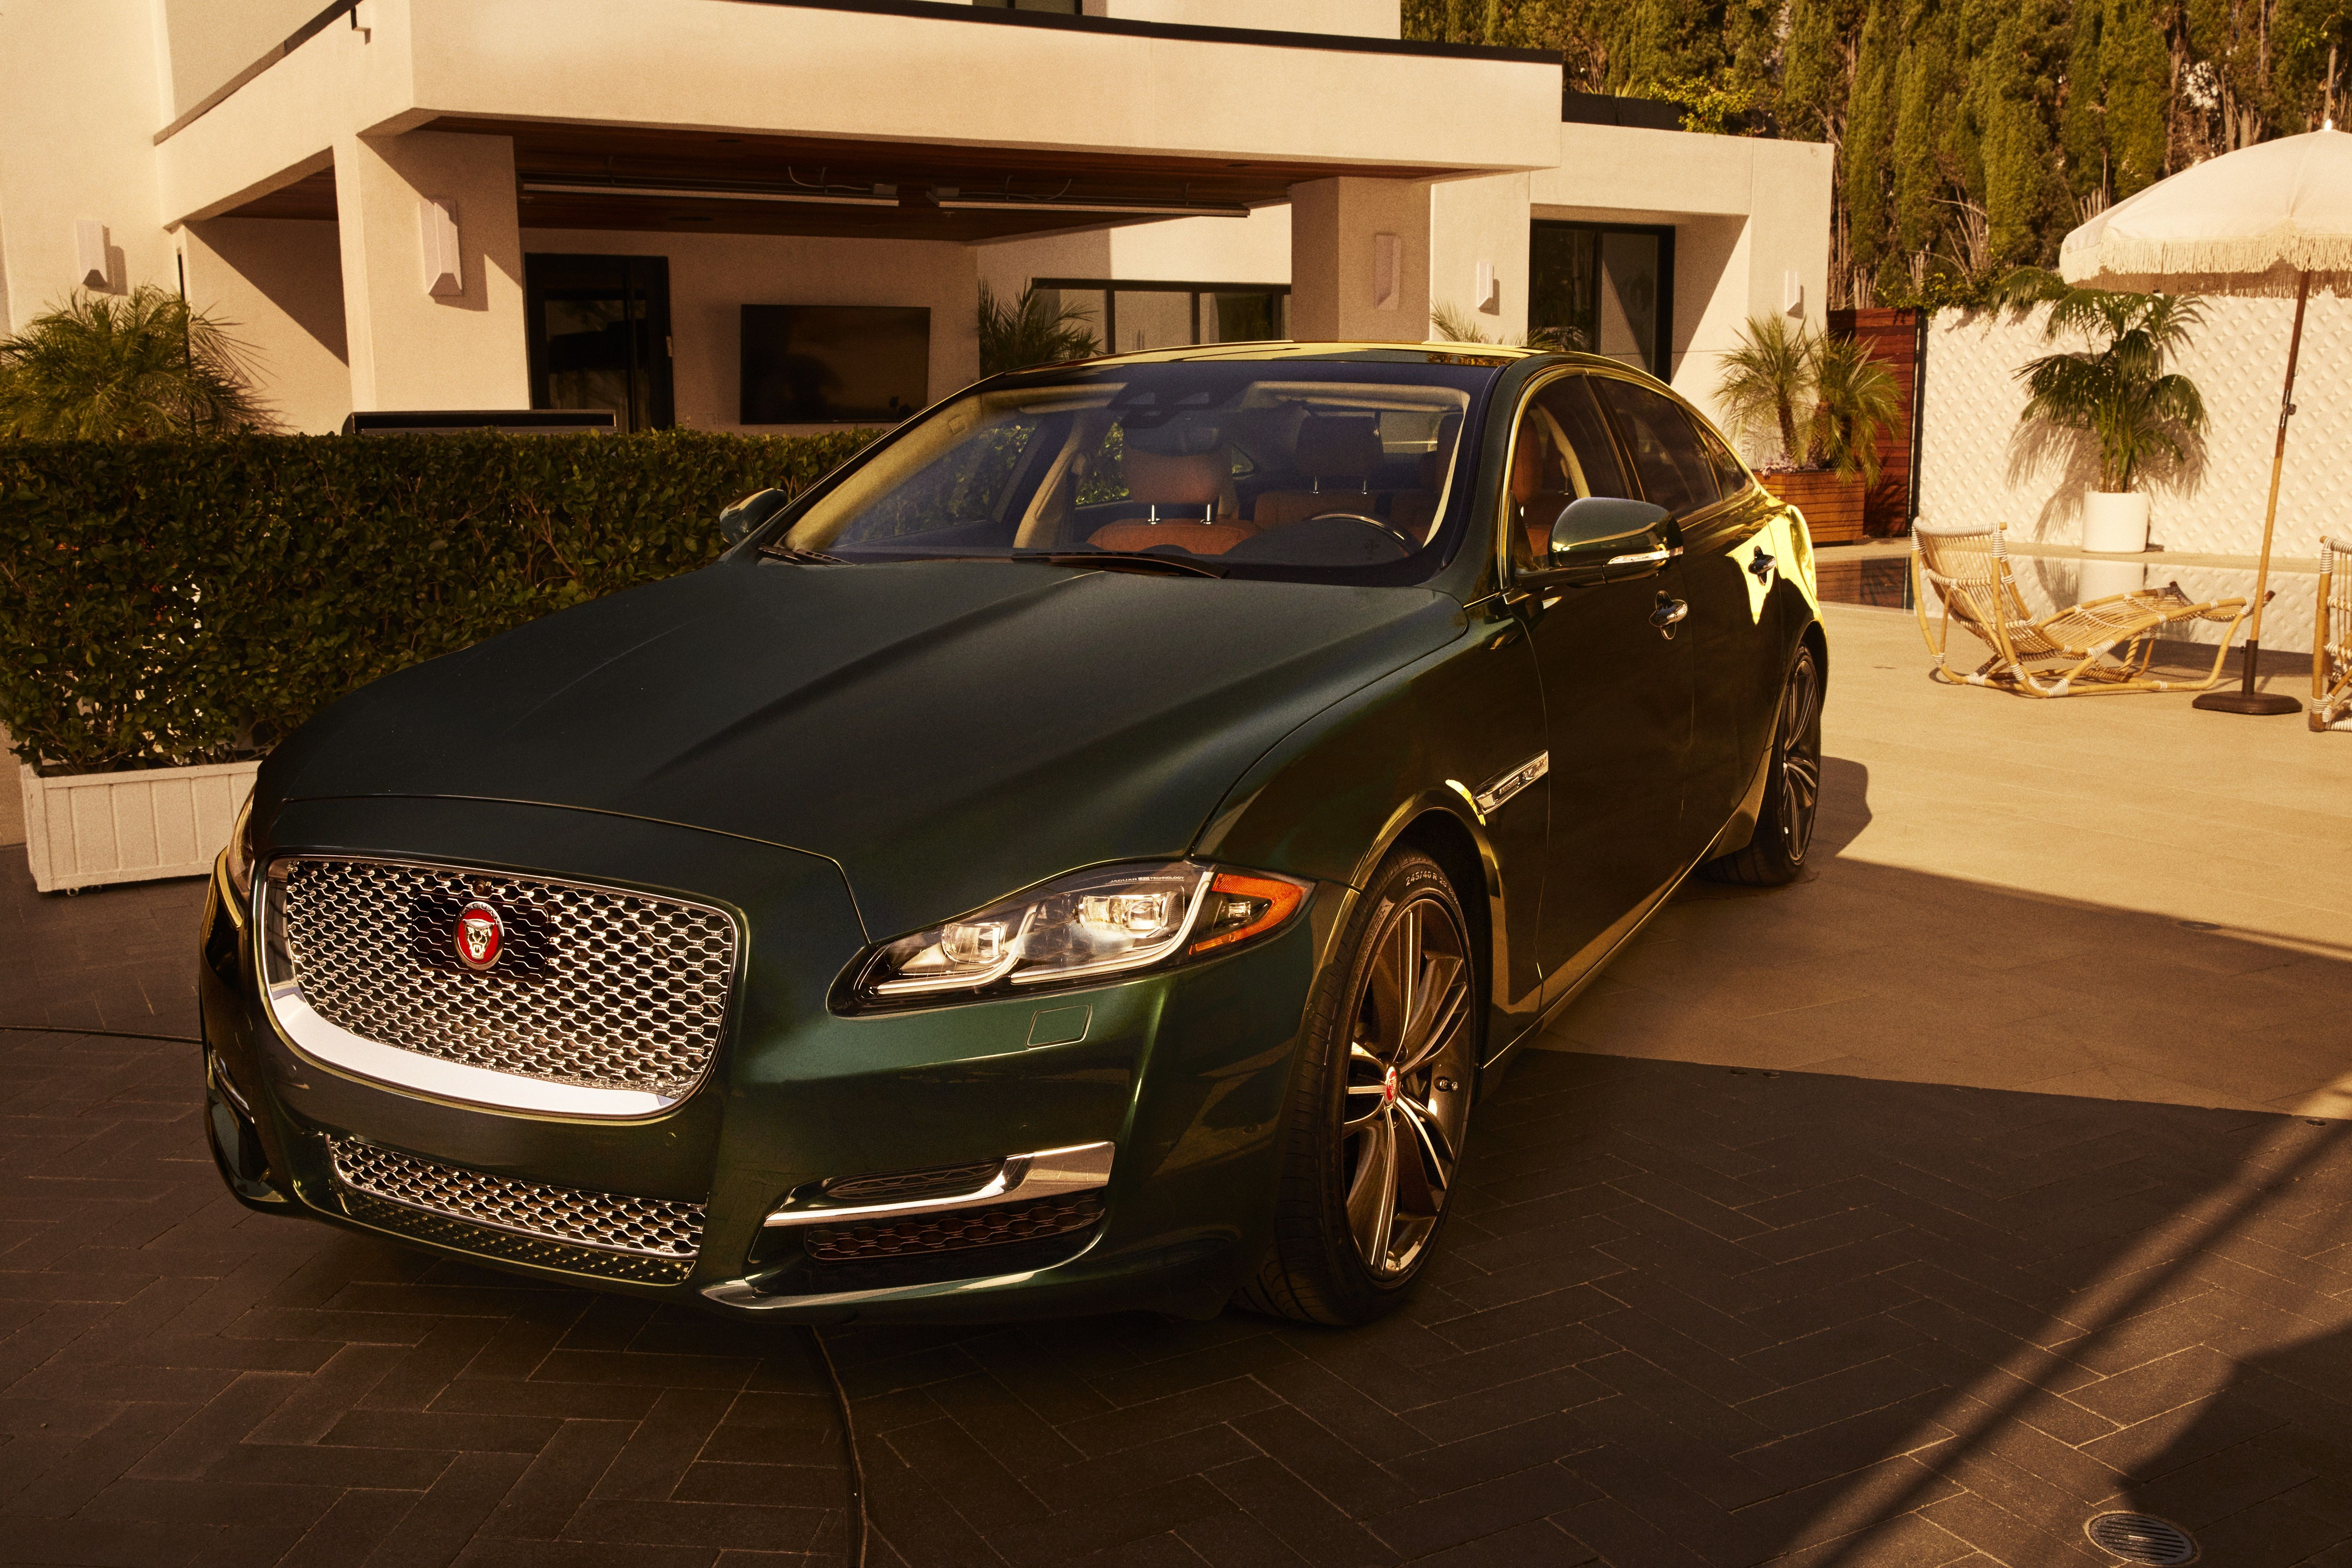 Jaguar Salutes One of Its Best Designs Ever with Final 300 XJ Sedans